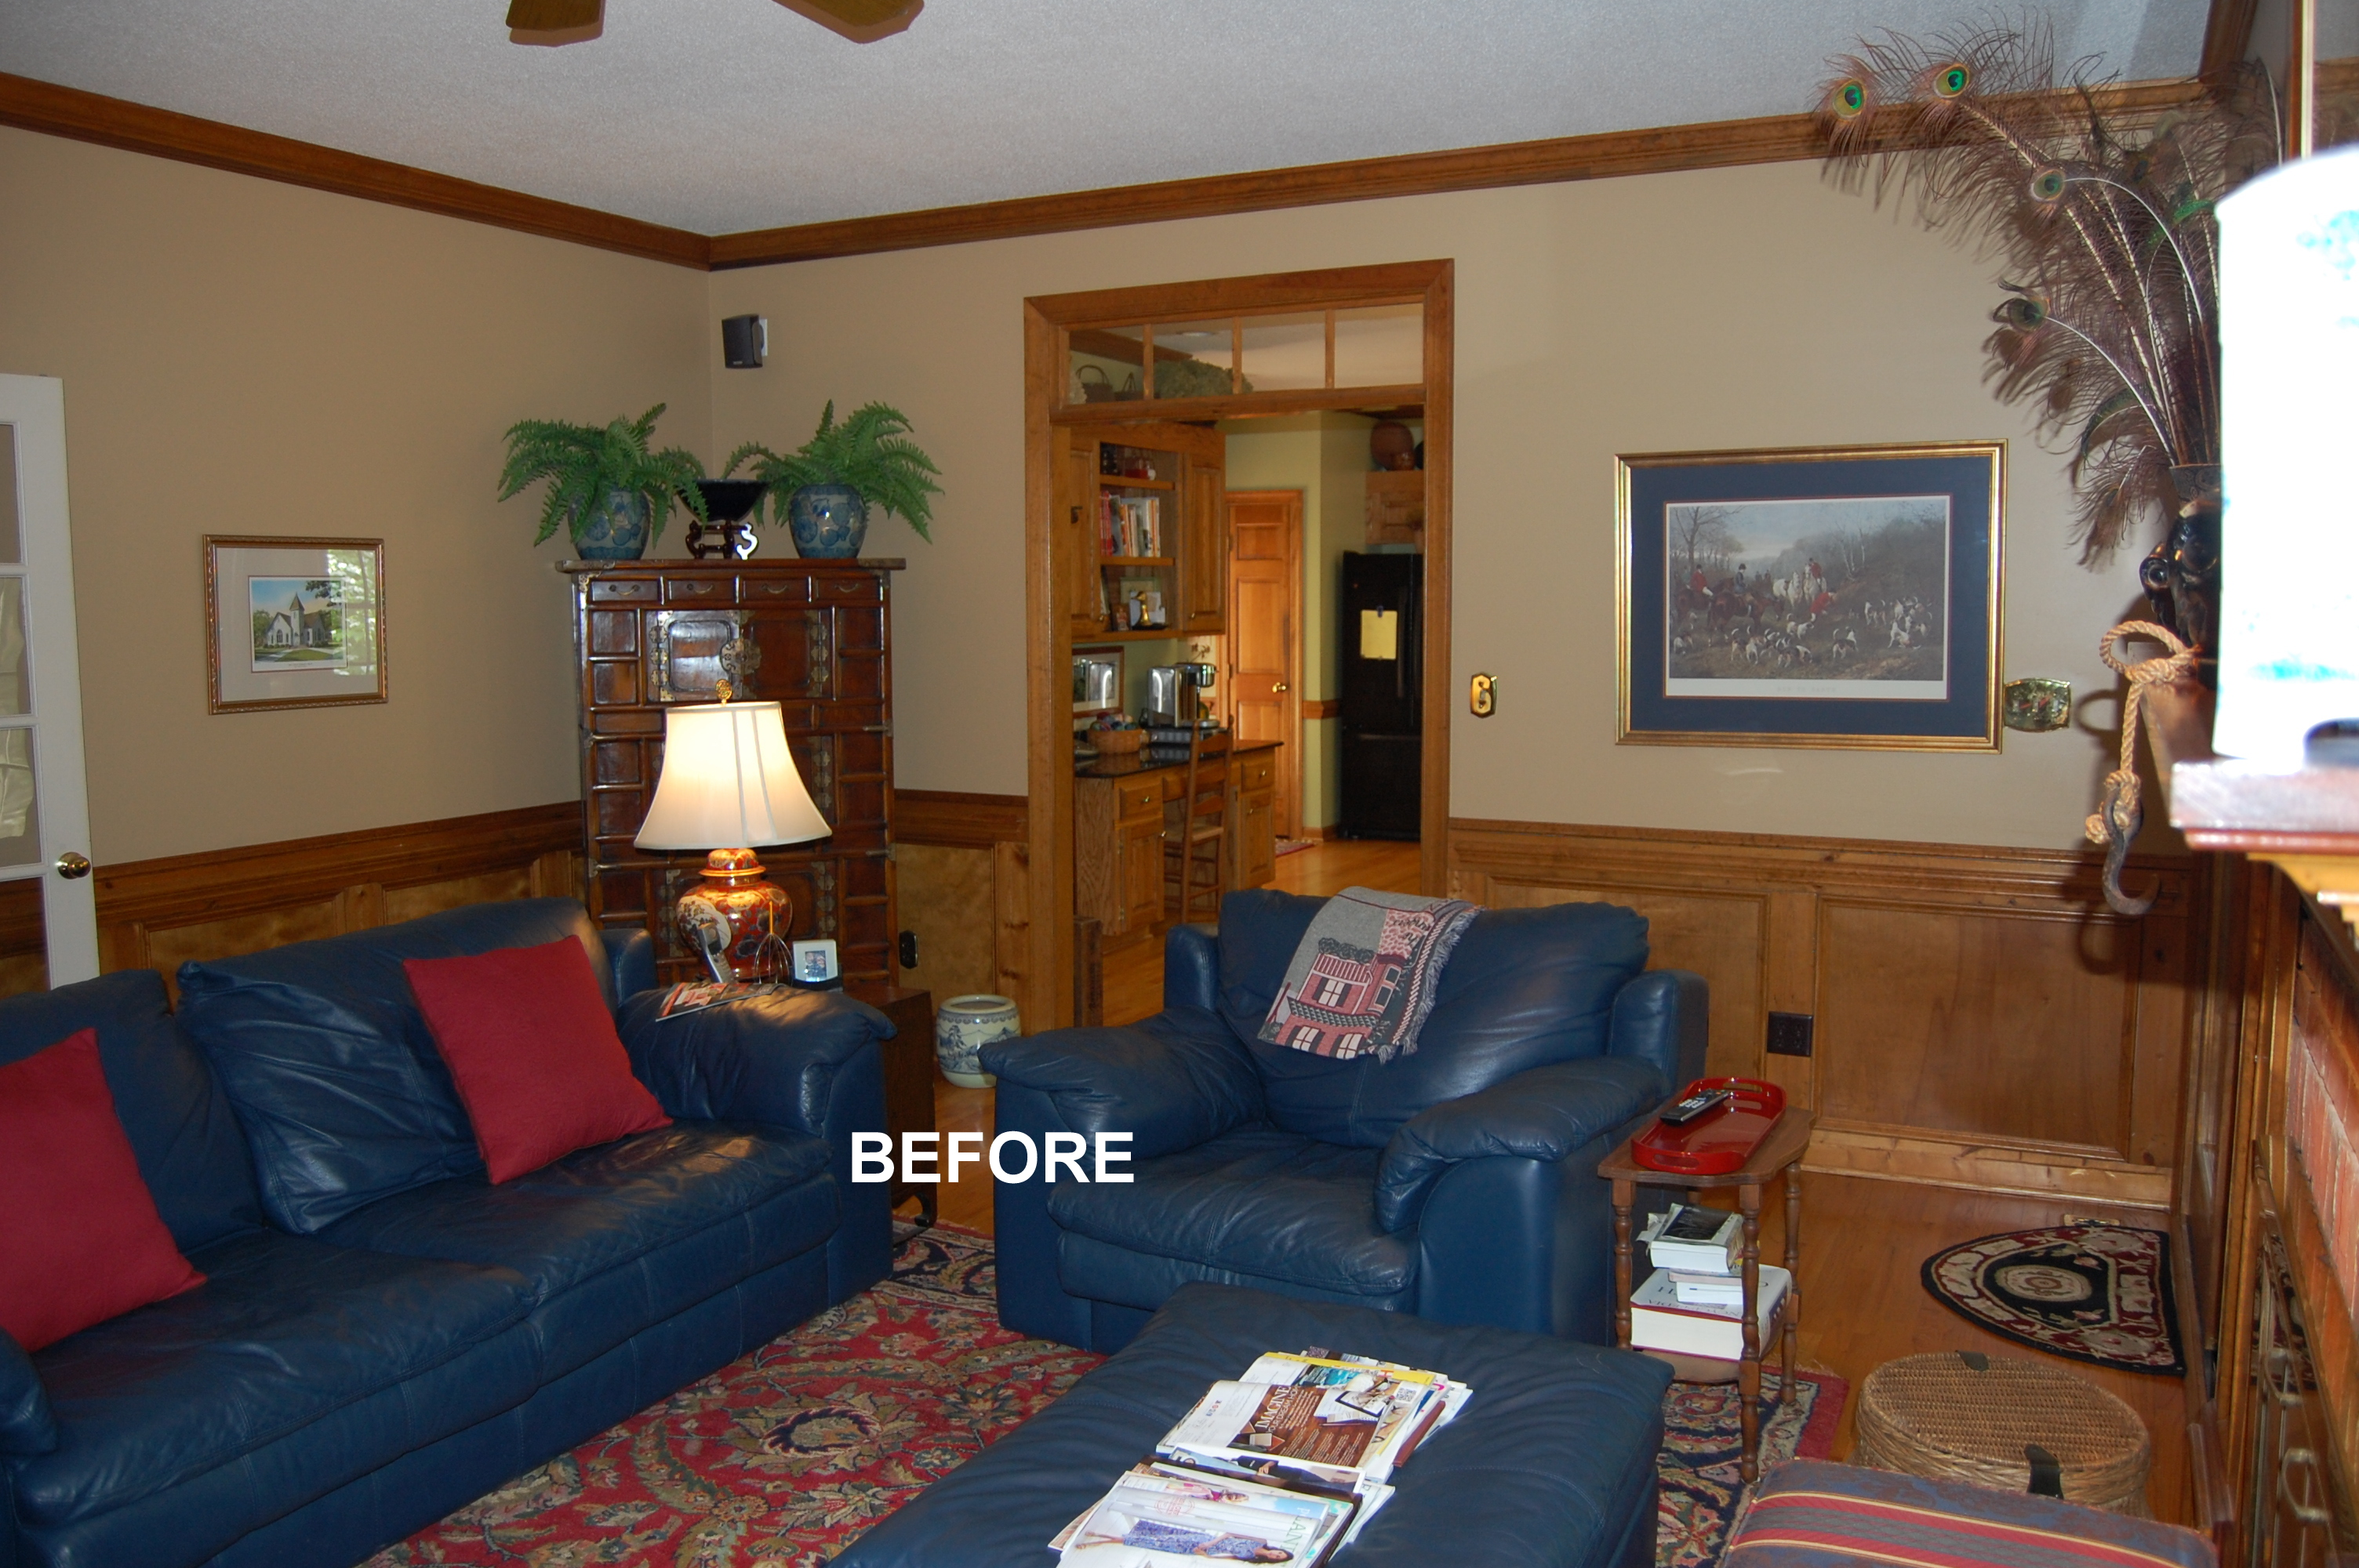 BEFORE - Trendmark Inc Before Best Whole House